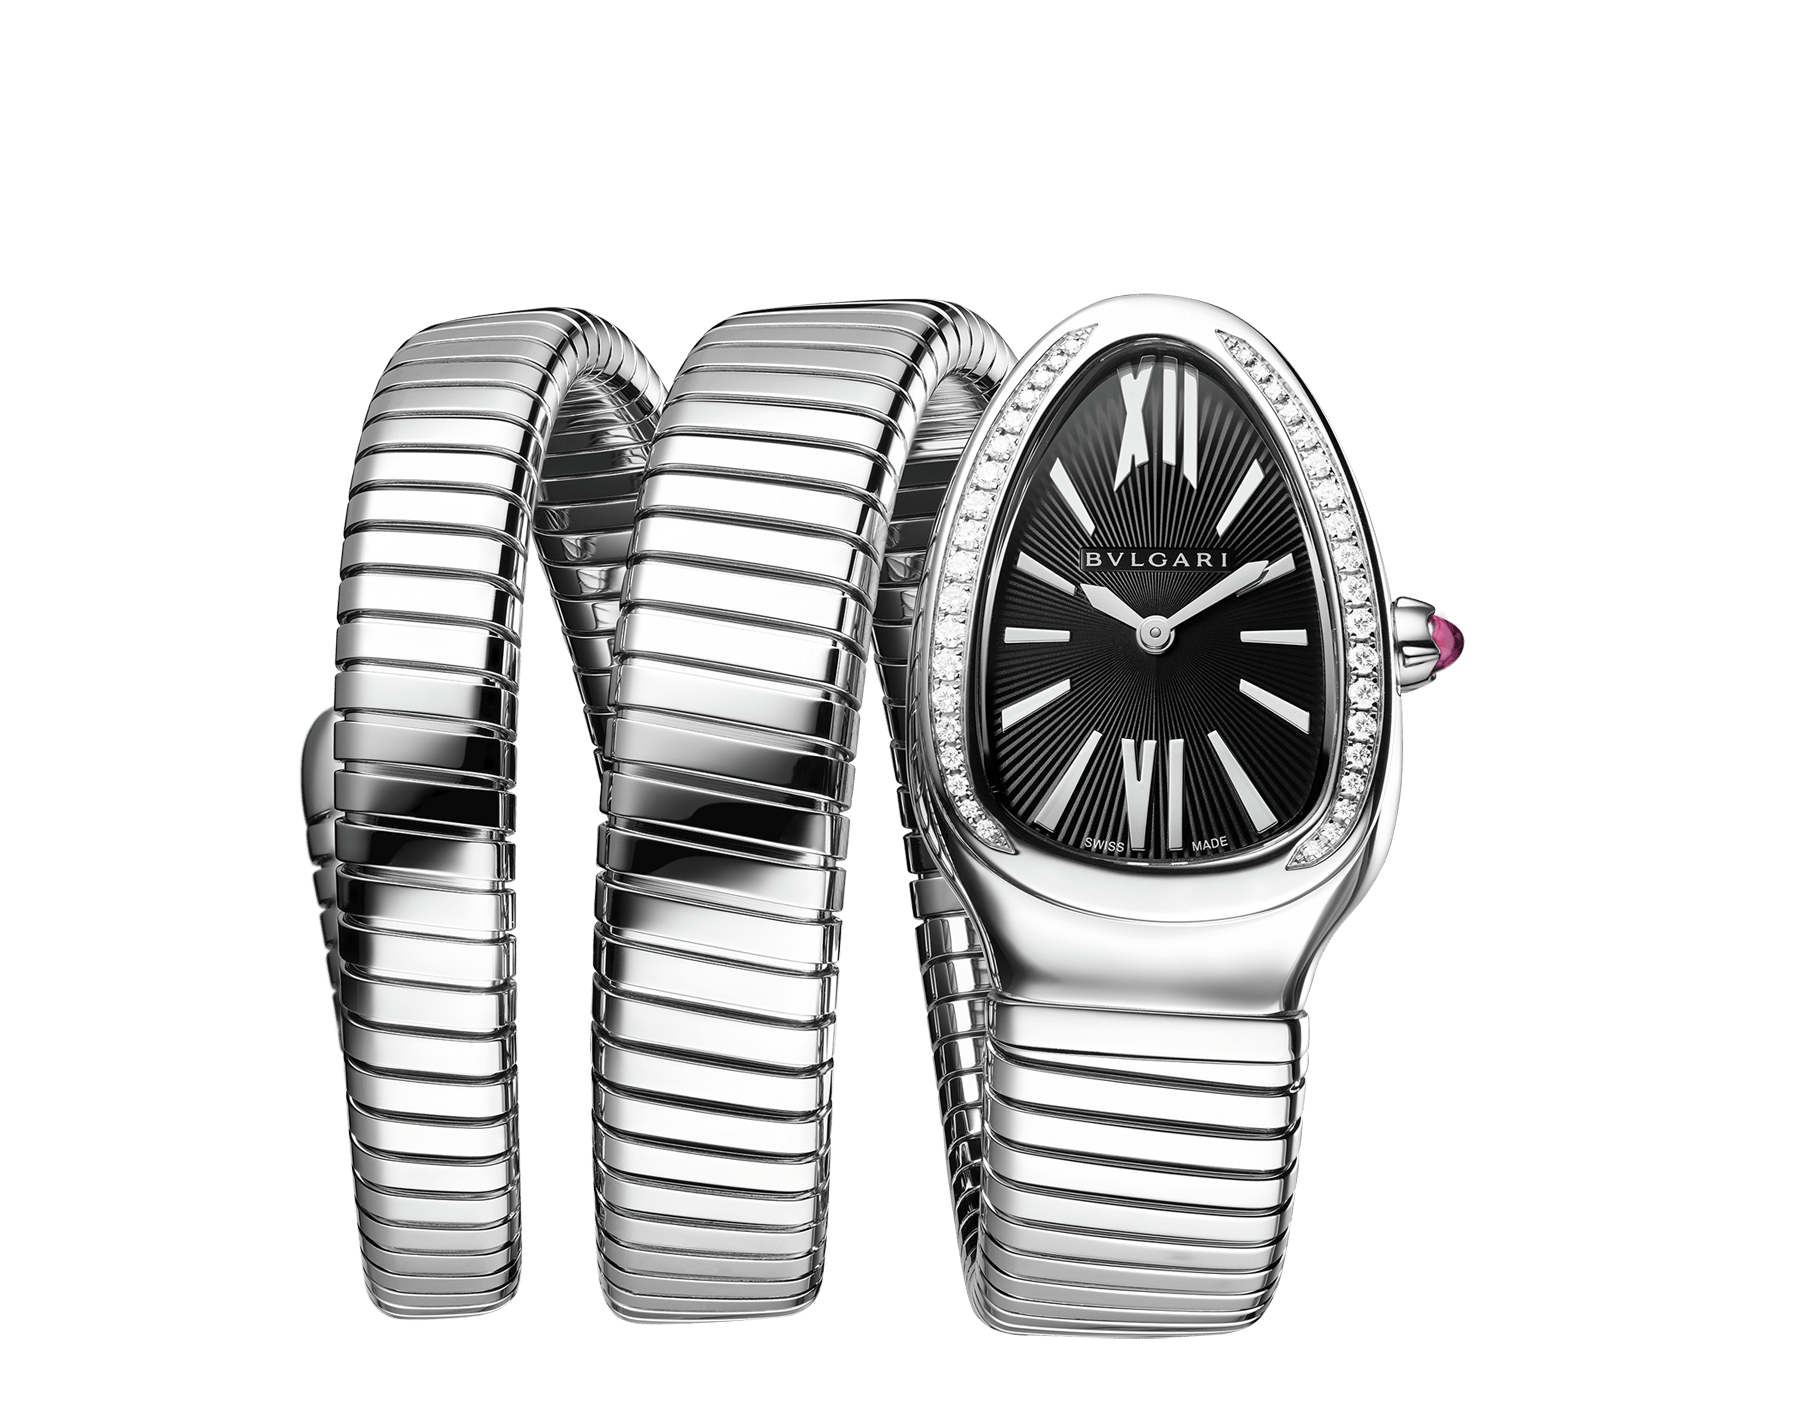 Serpenti Tubogas double spiral watch with stainless steel case and bracelet, bezel set with brilliant-cut diamonds and black dial with guilloché soleil treatment. Water-resistant up to 30 meters. Large size 103433 image 1